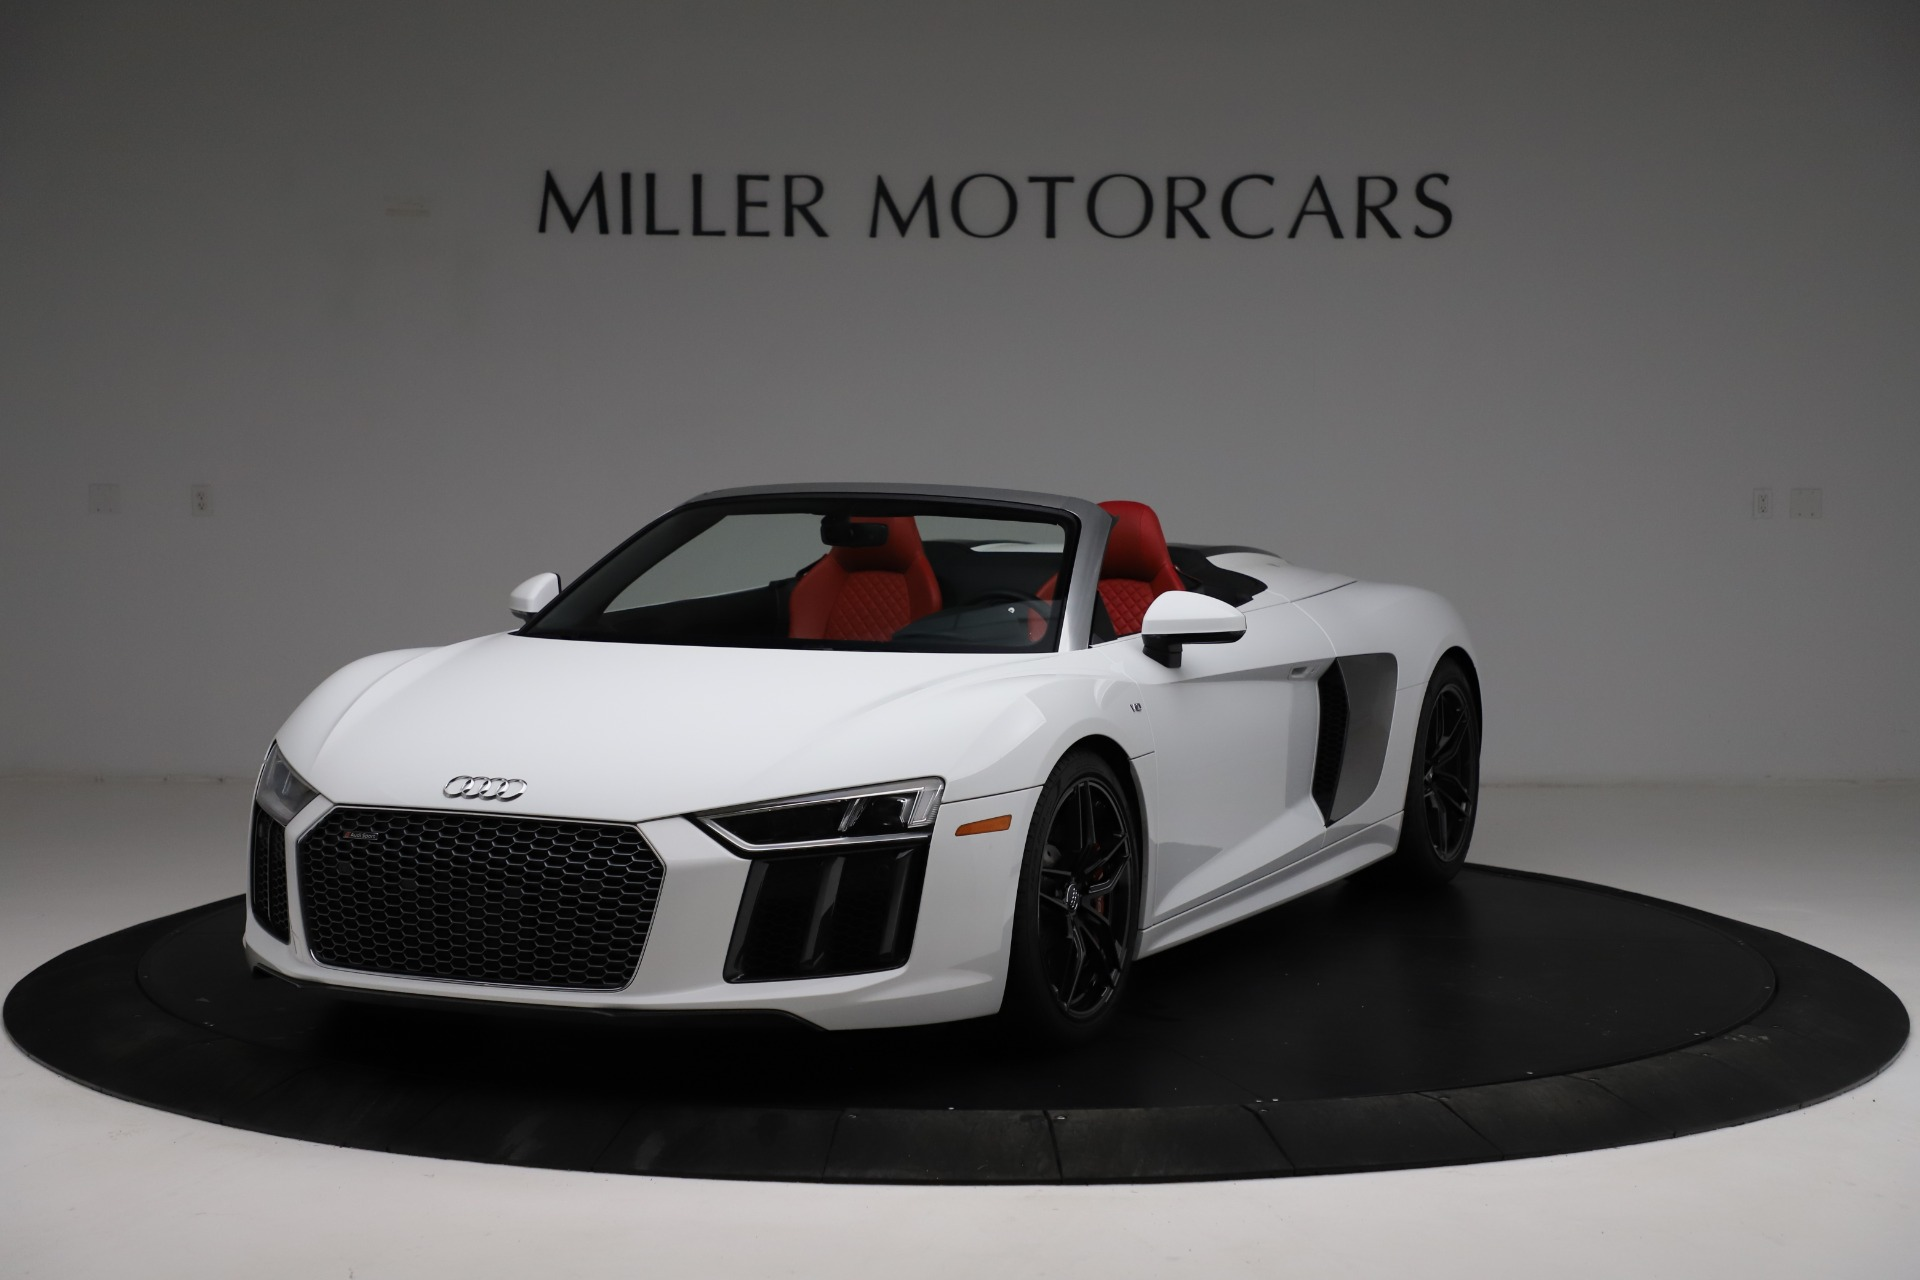 Used 2018 Audi R8 Spyder for sale $154,900 at Aston Martin of Greenwich in Greenwich CT 06830 1